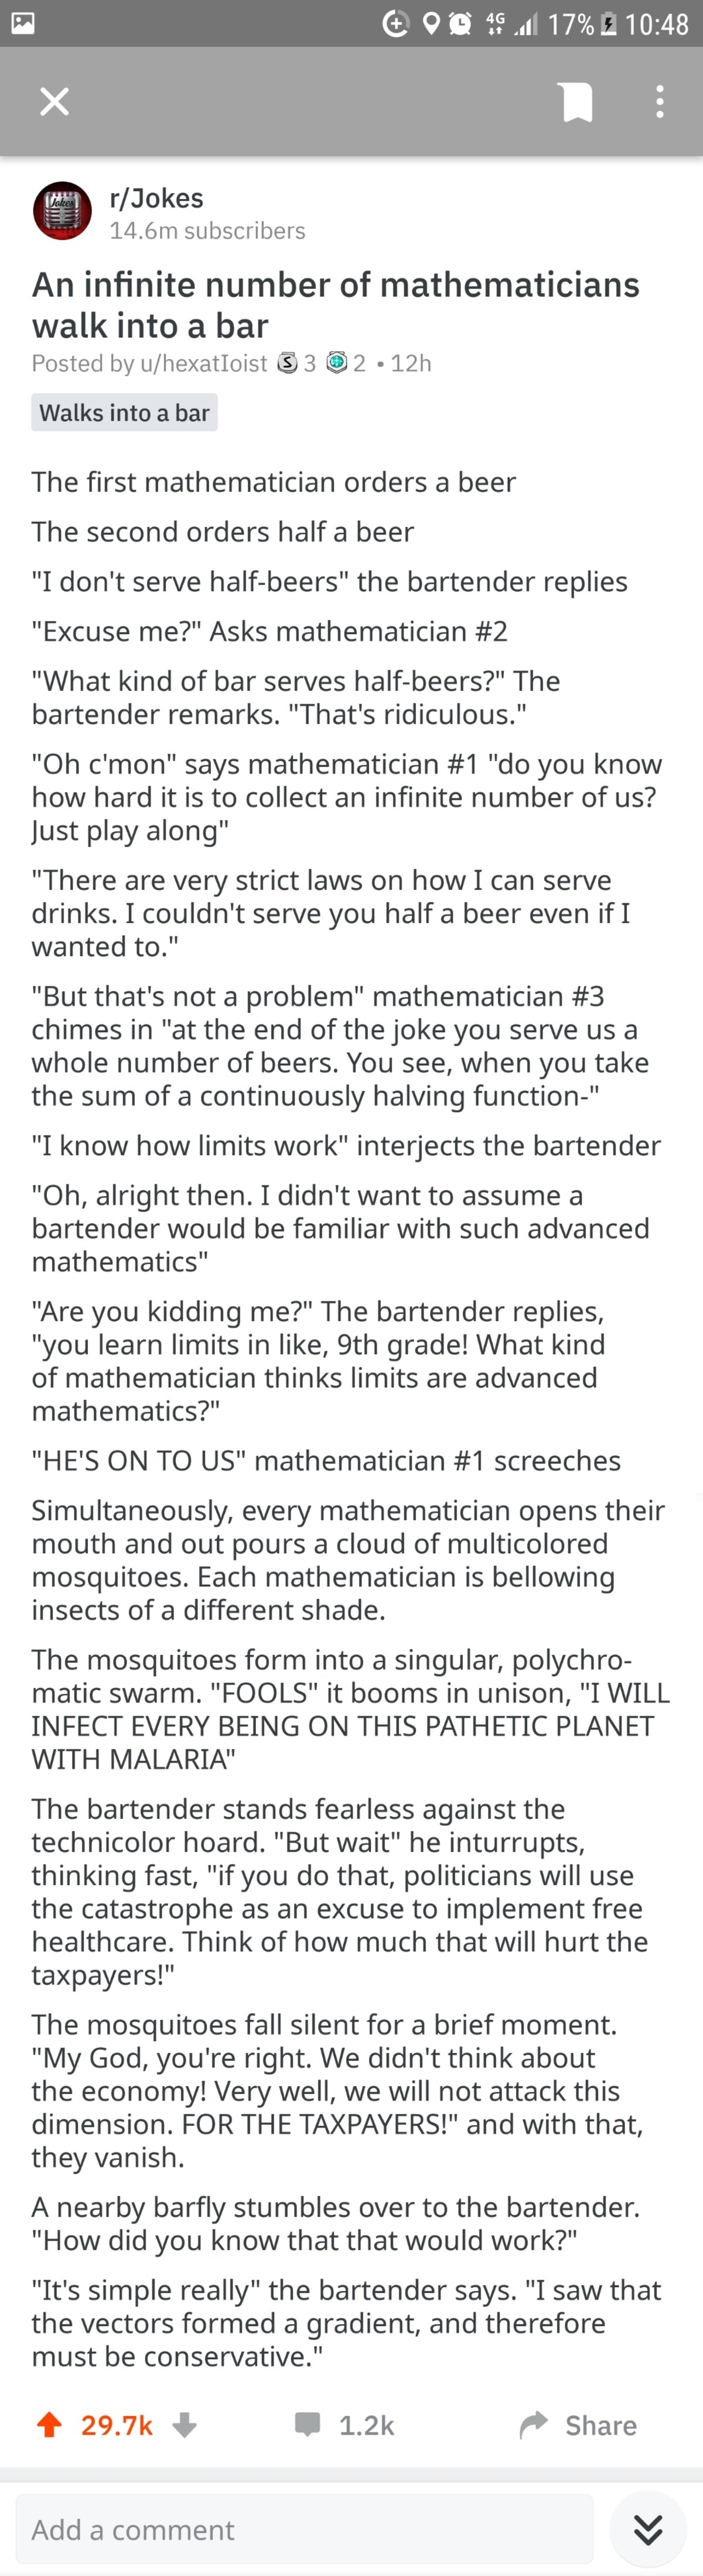 Maths. .. I feel like the characters of this joke became self aware and started writing the joke themselves.